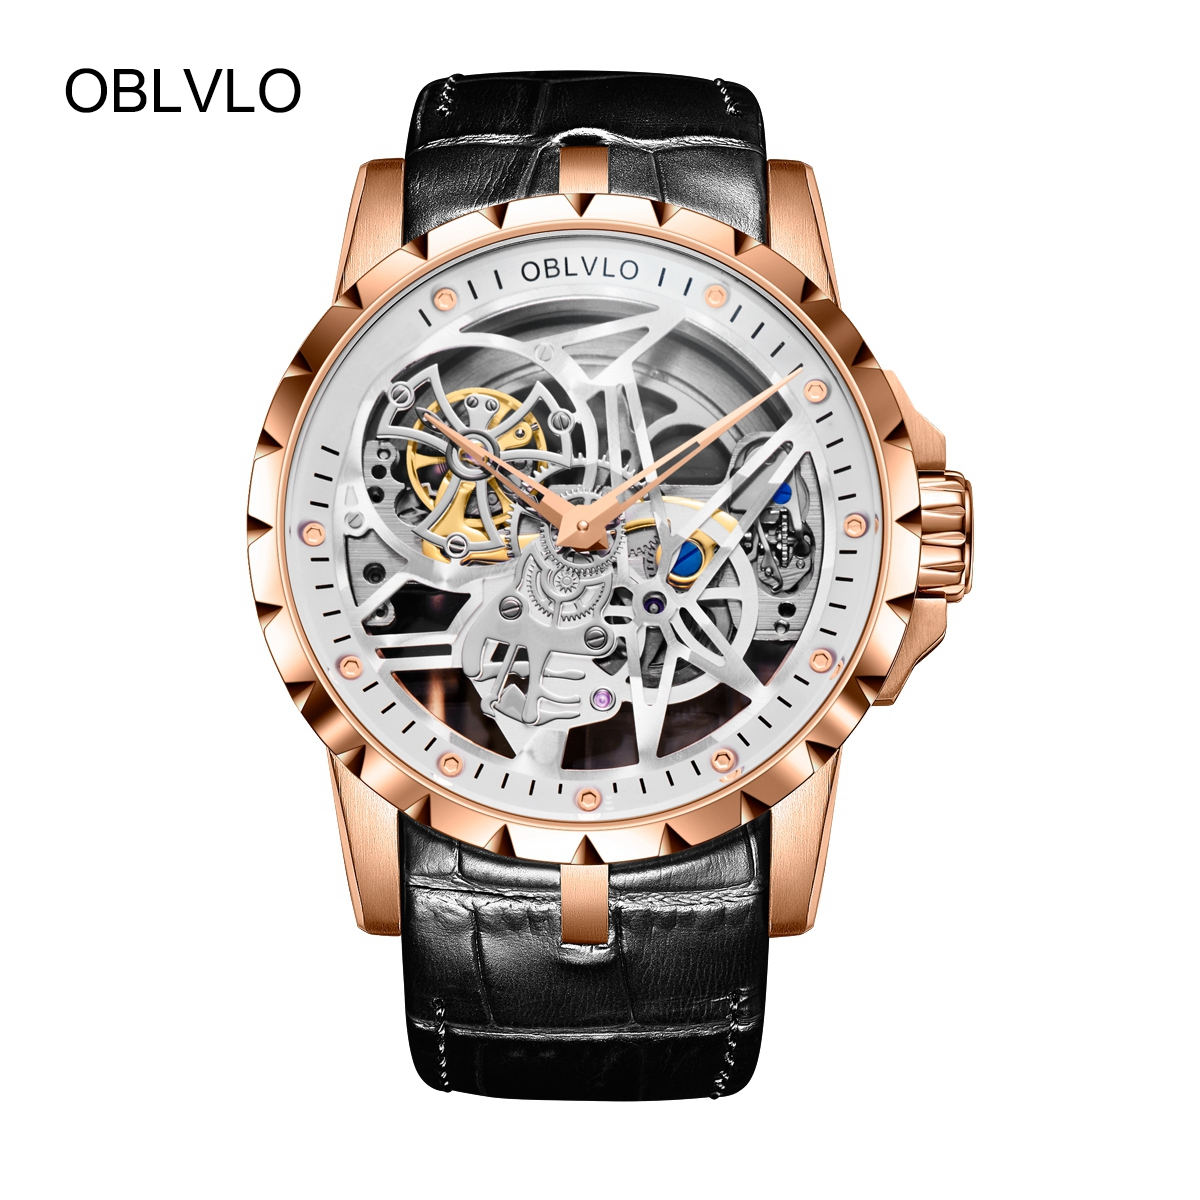 OBLVLO Rose Gold Mens Tourbillon Skeleton Watches Watches Leather Transparent Automatic Watch OBL3603RSBW